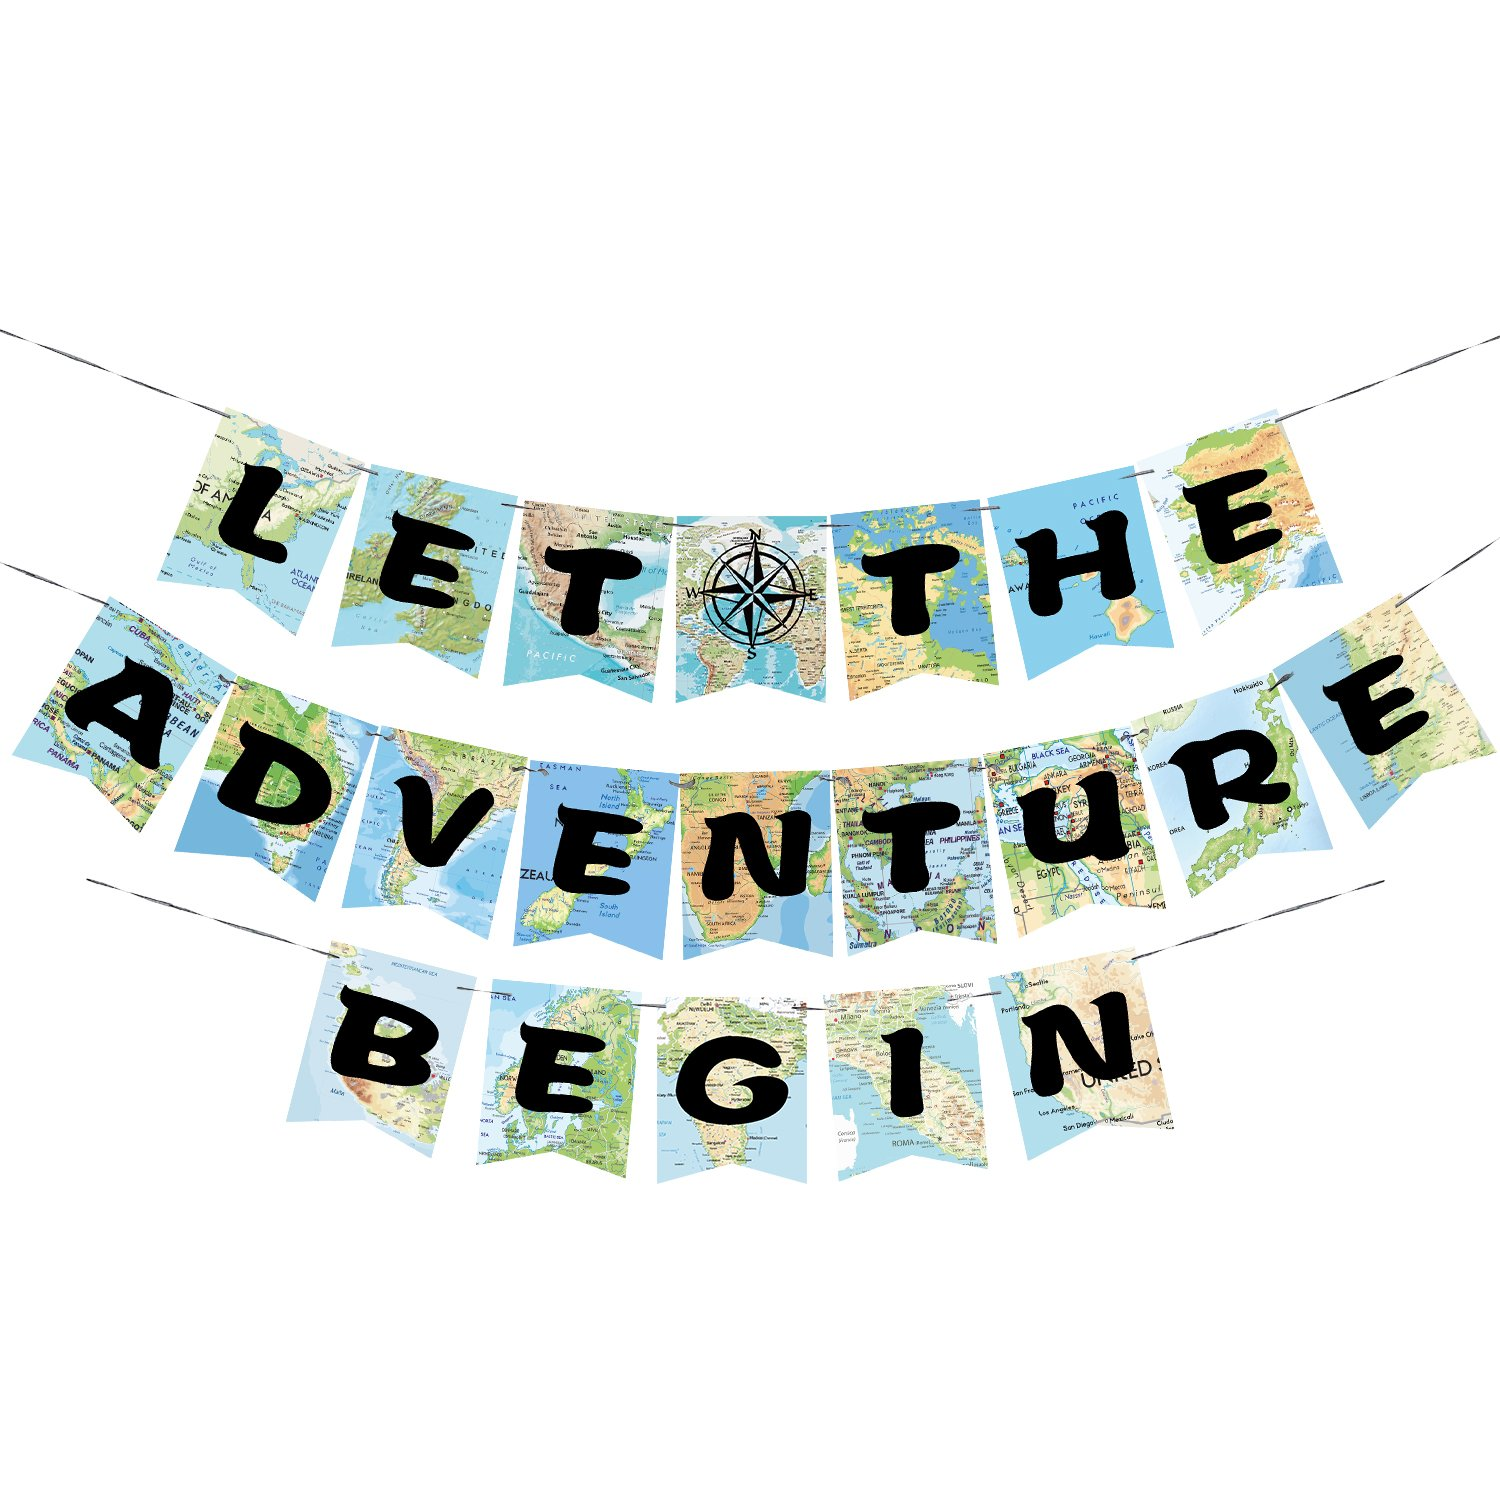 WERNNSAI Bon Voyage Party Decorations - World Map Pennant Let The Adventure Begin Bunting Banner for Birthday Baby Shower Graduation Retirement Travel Themed Party Supplies by WERNNSAI